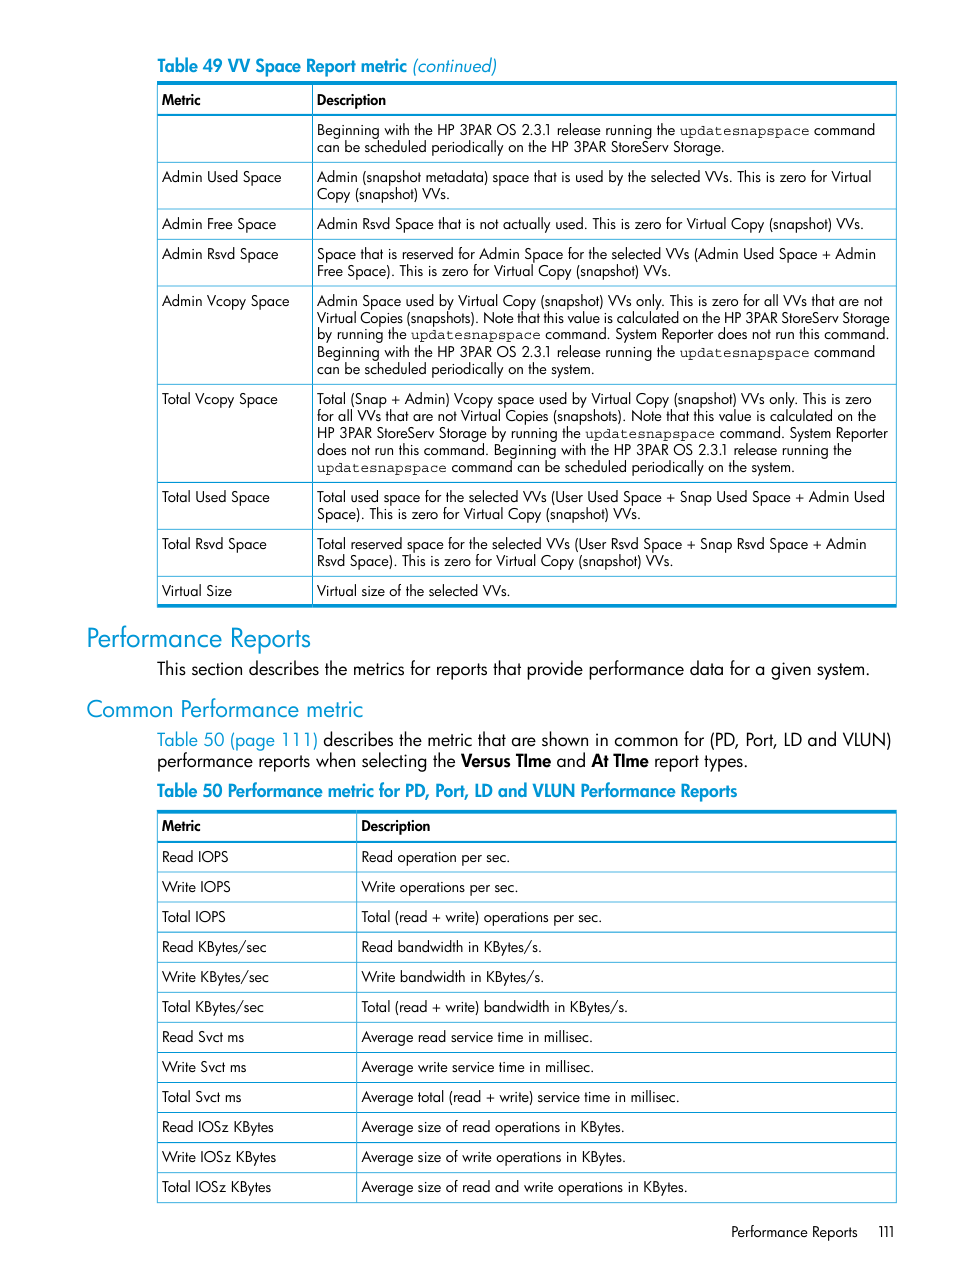 Performance reports, Common performance metric | HP 3PAR System